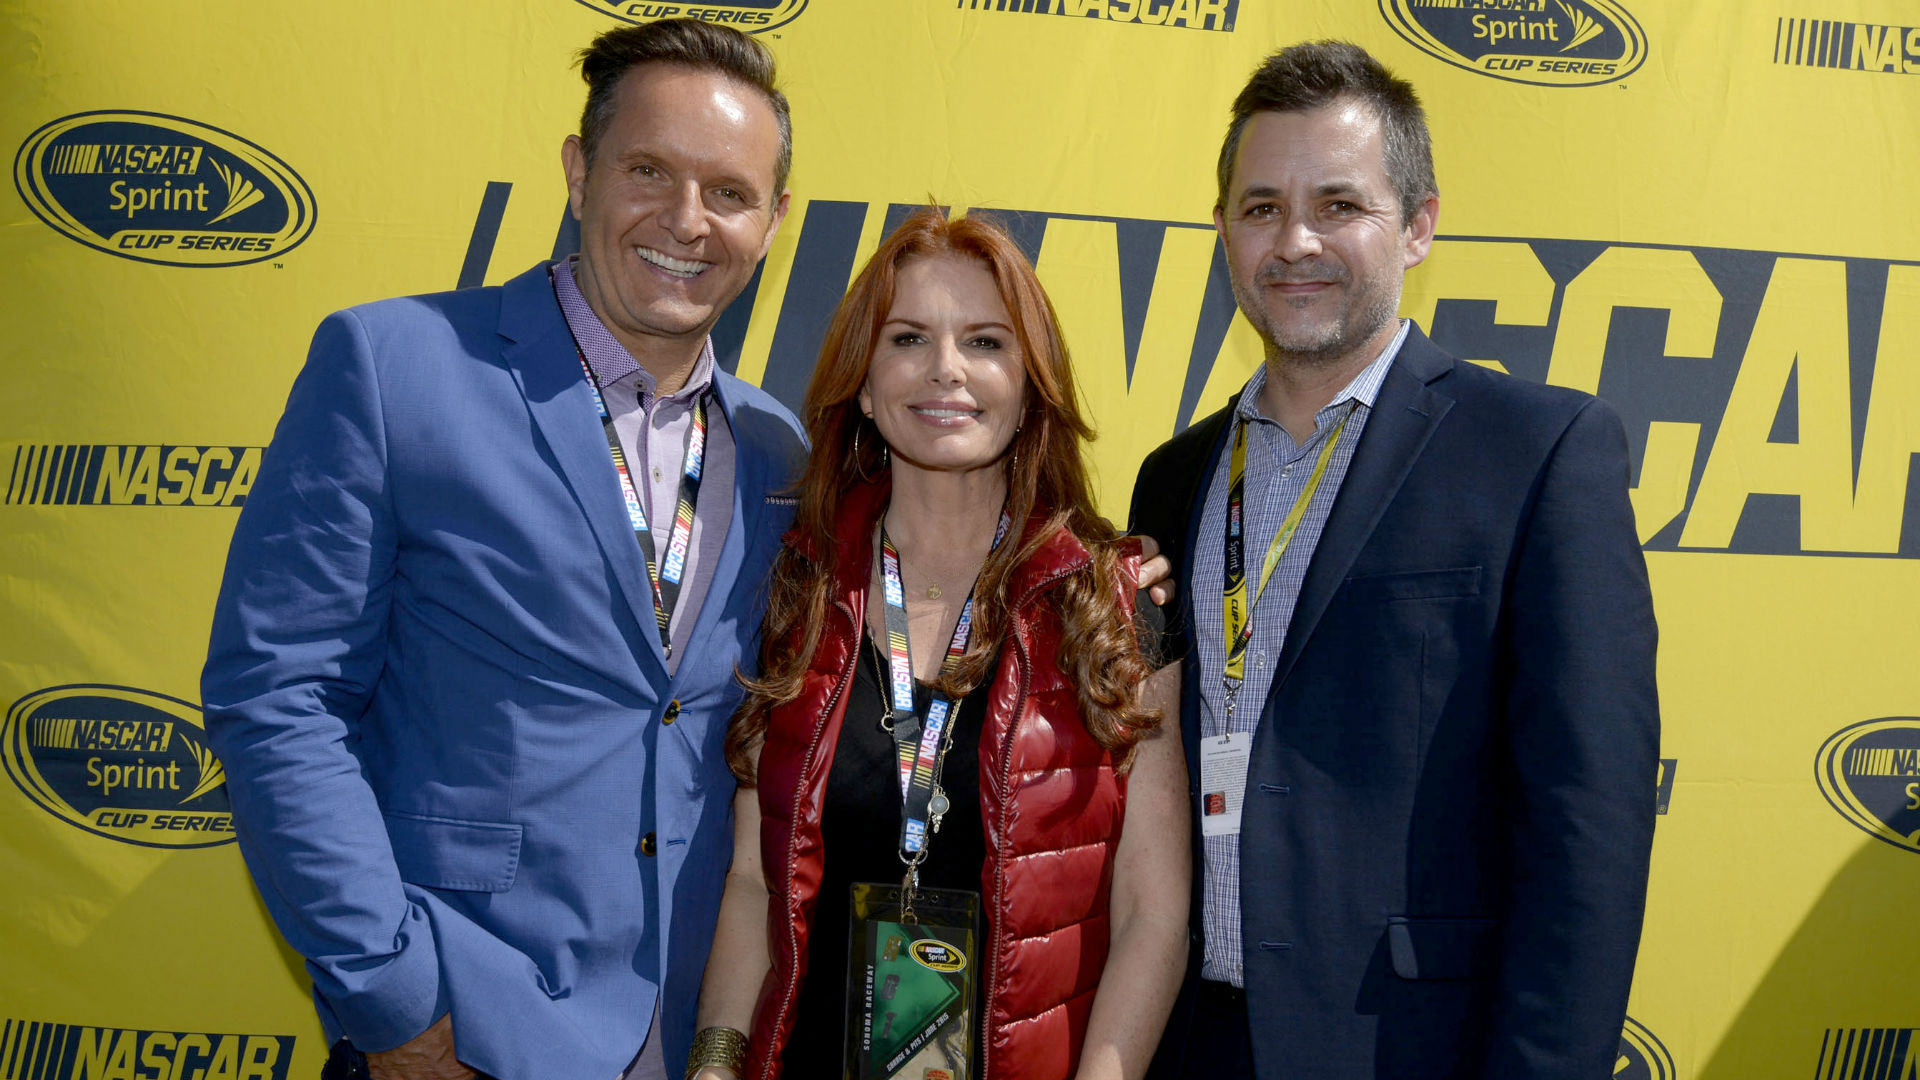 Mark Burnett working on scripted NASCAR TV series